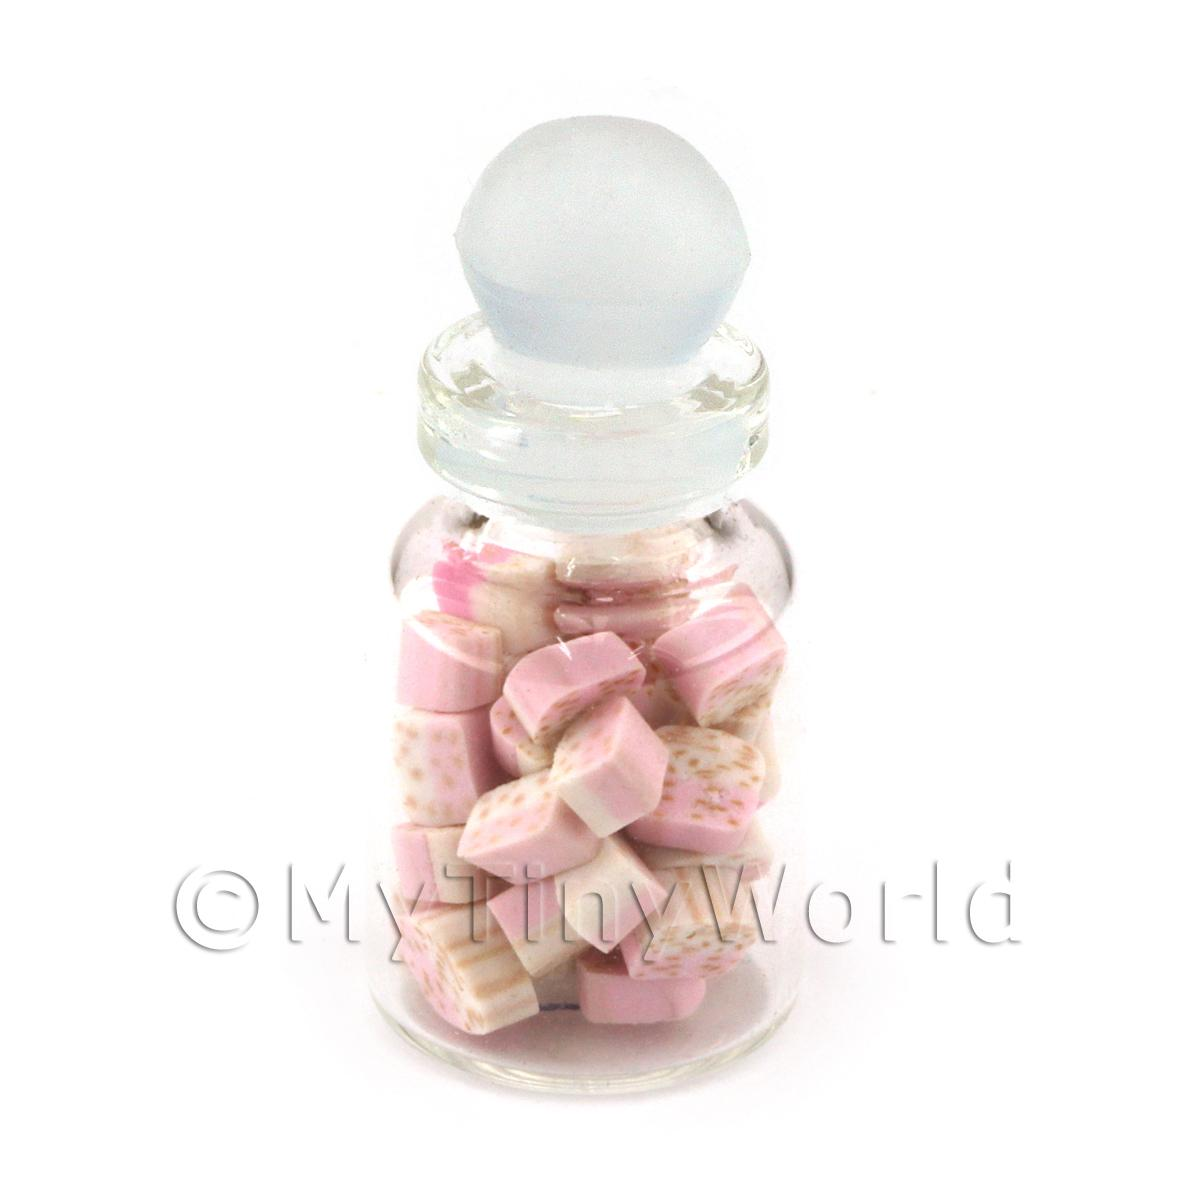 Miniature Handmade Nougat Pieces In a Glass Jar